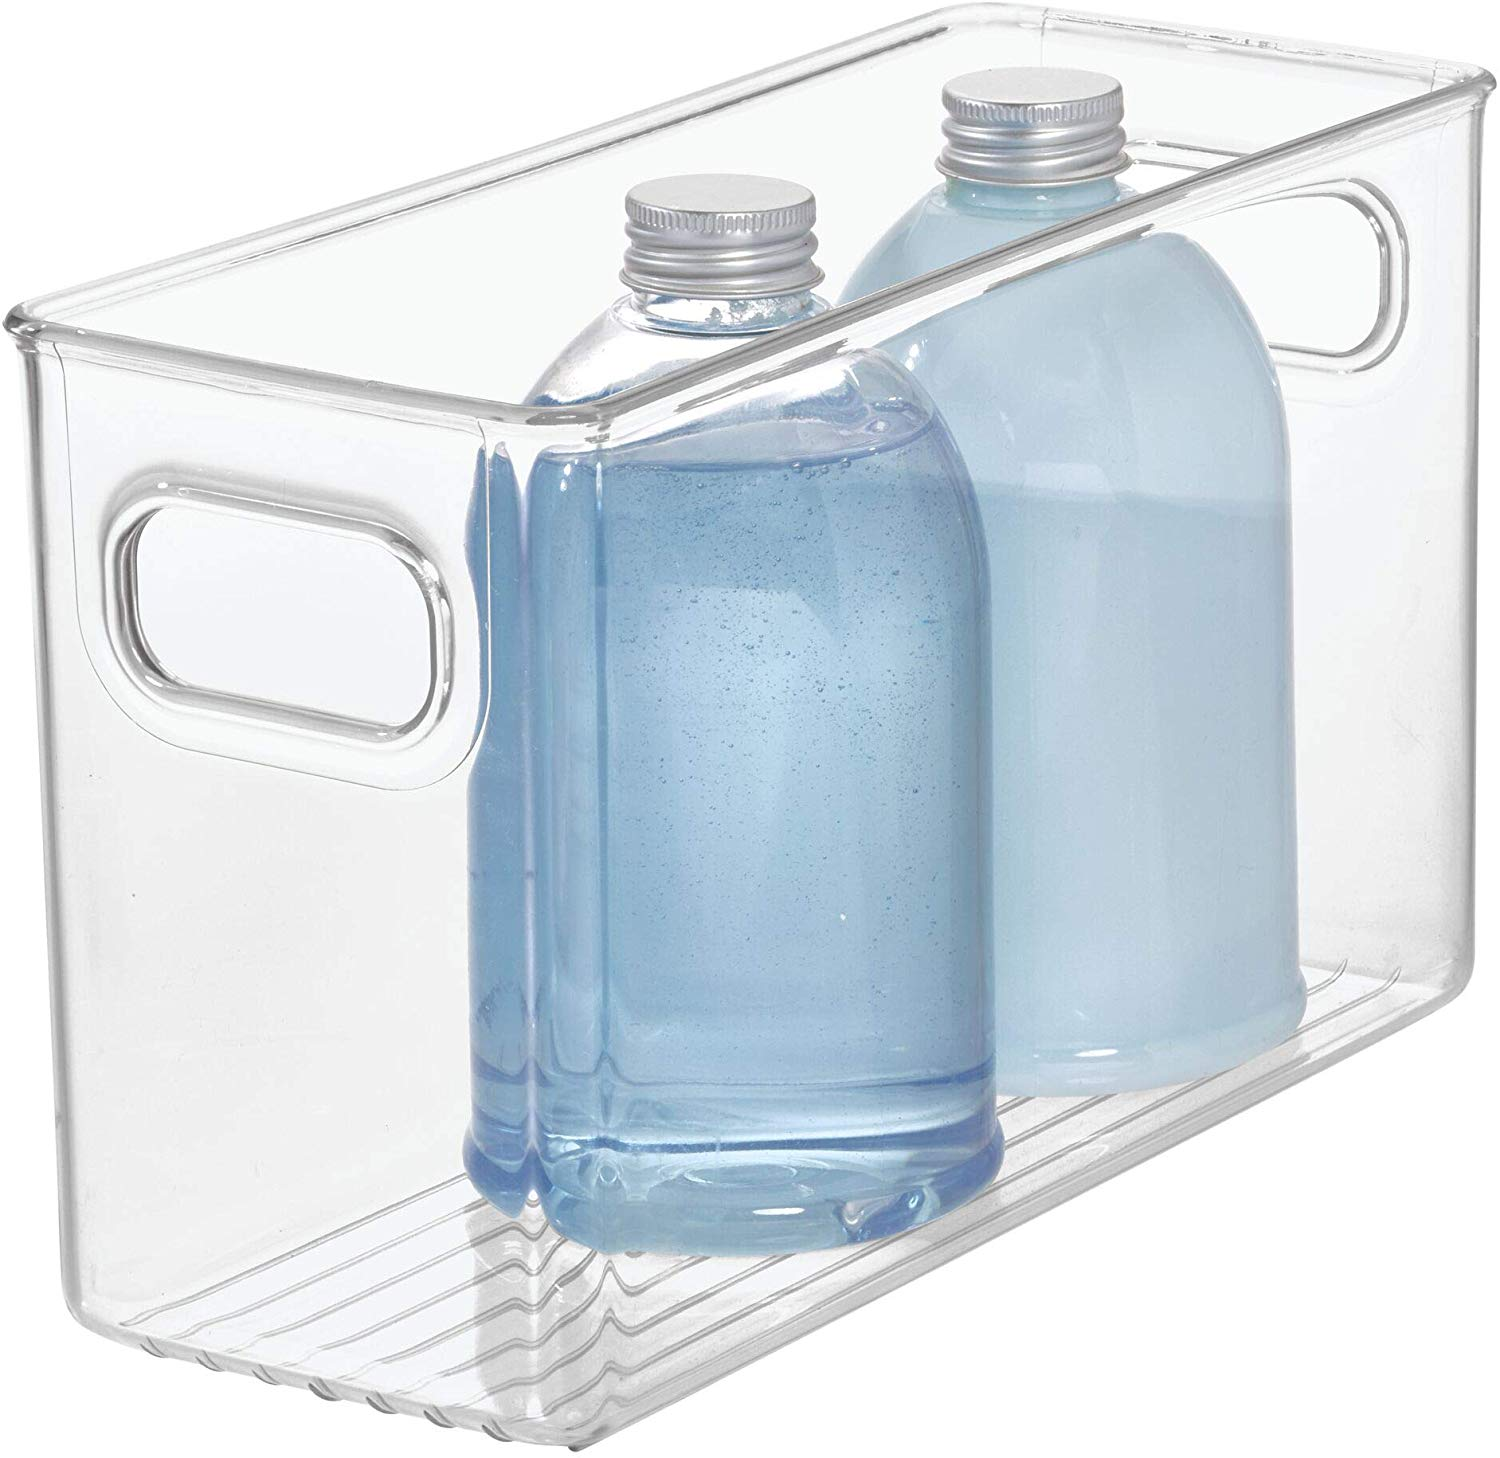 Shower Caddies & Organizers